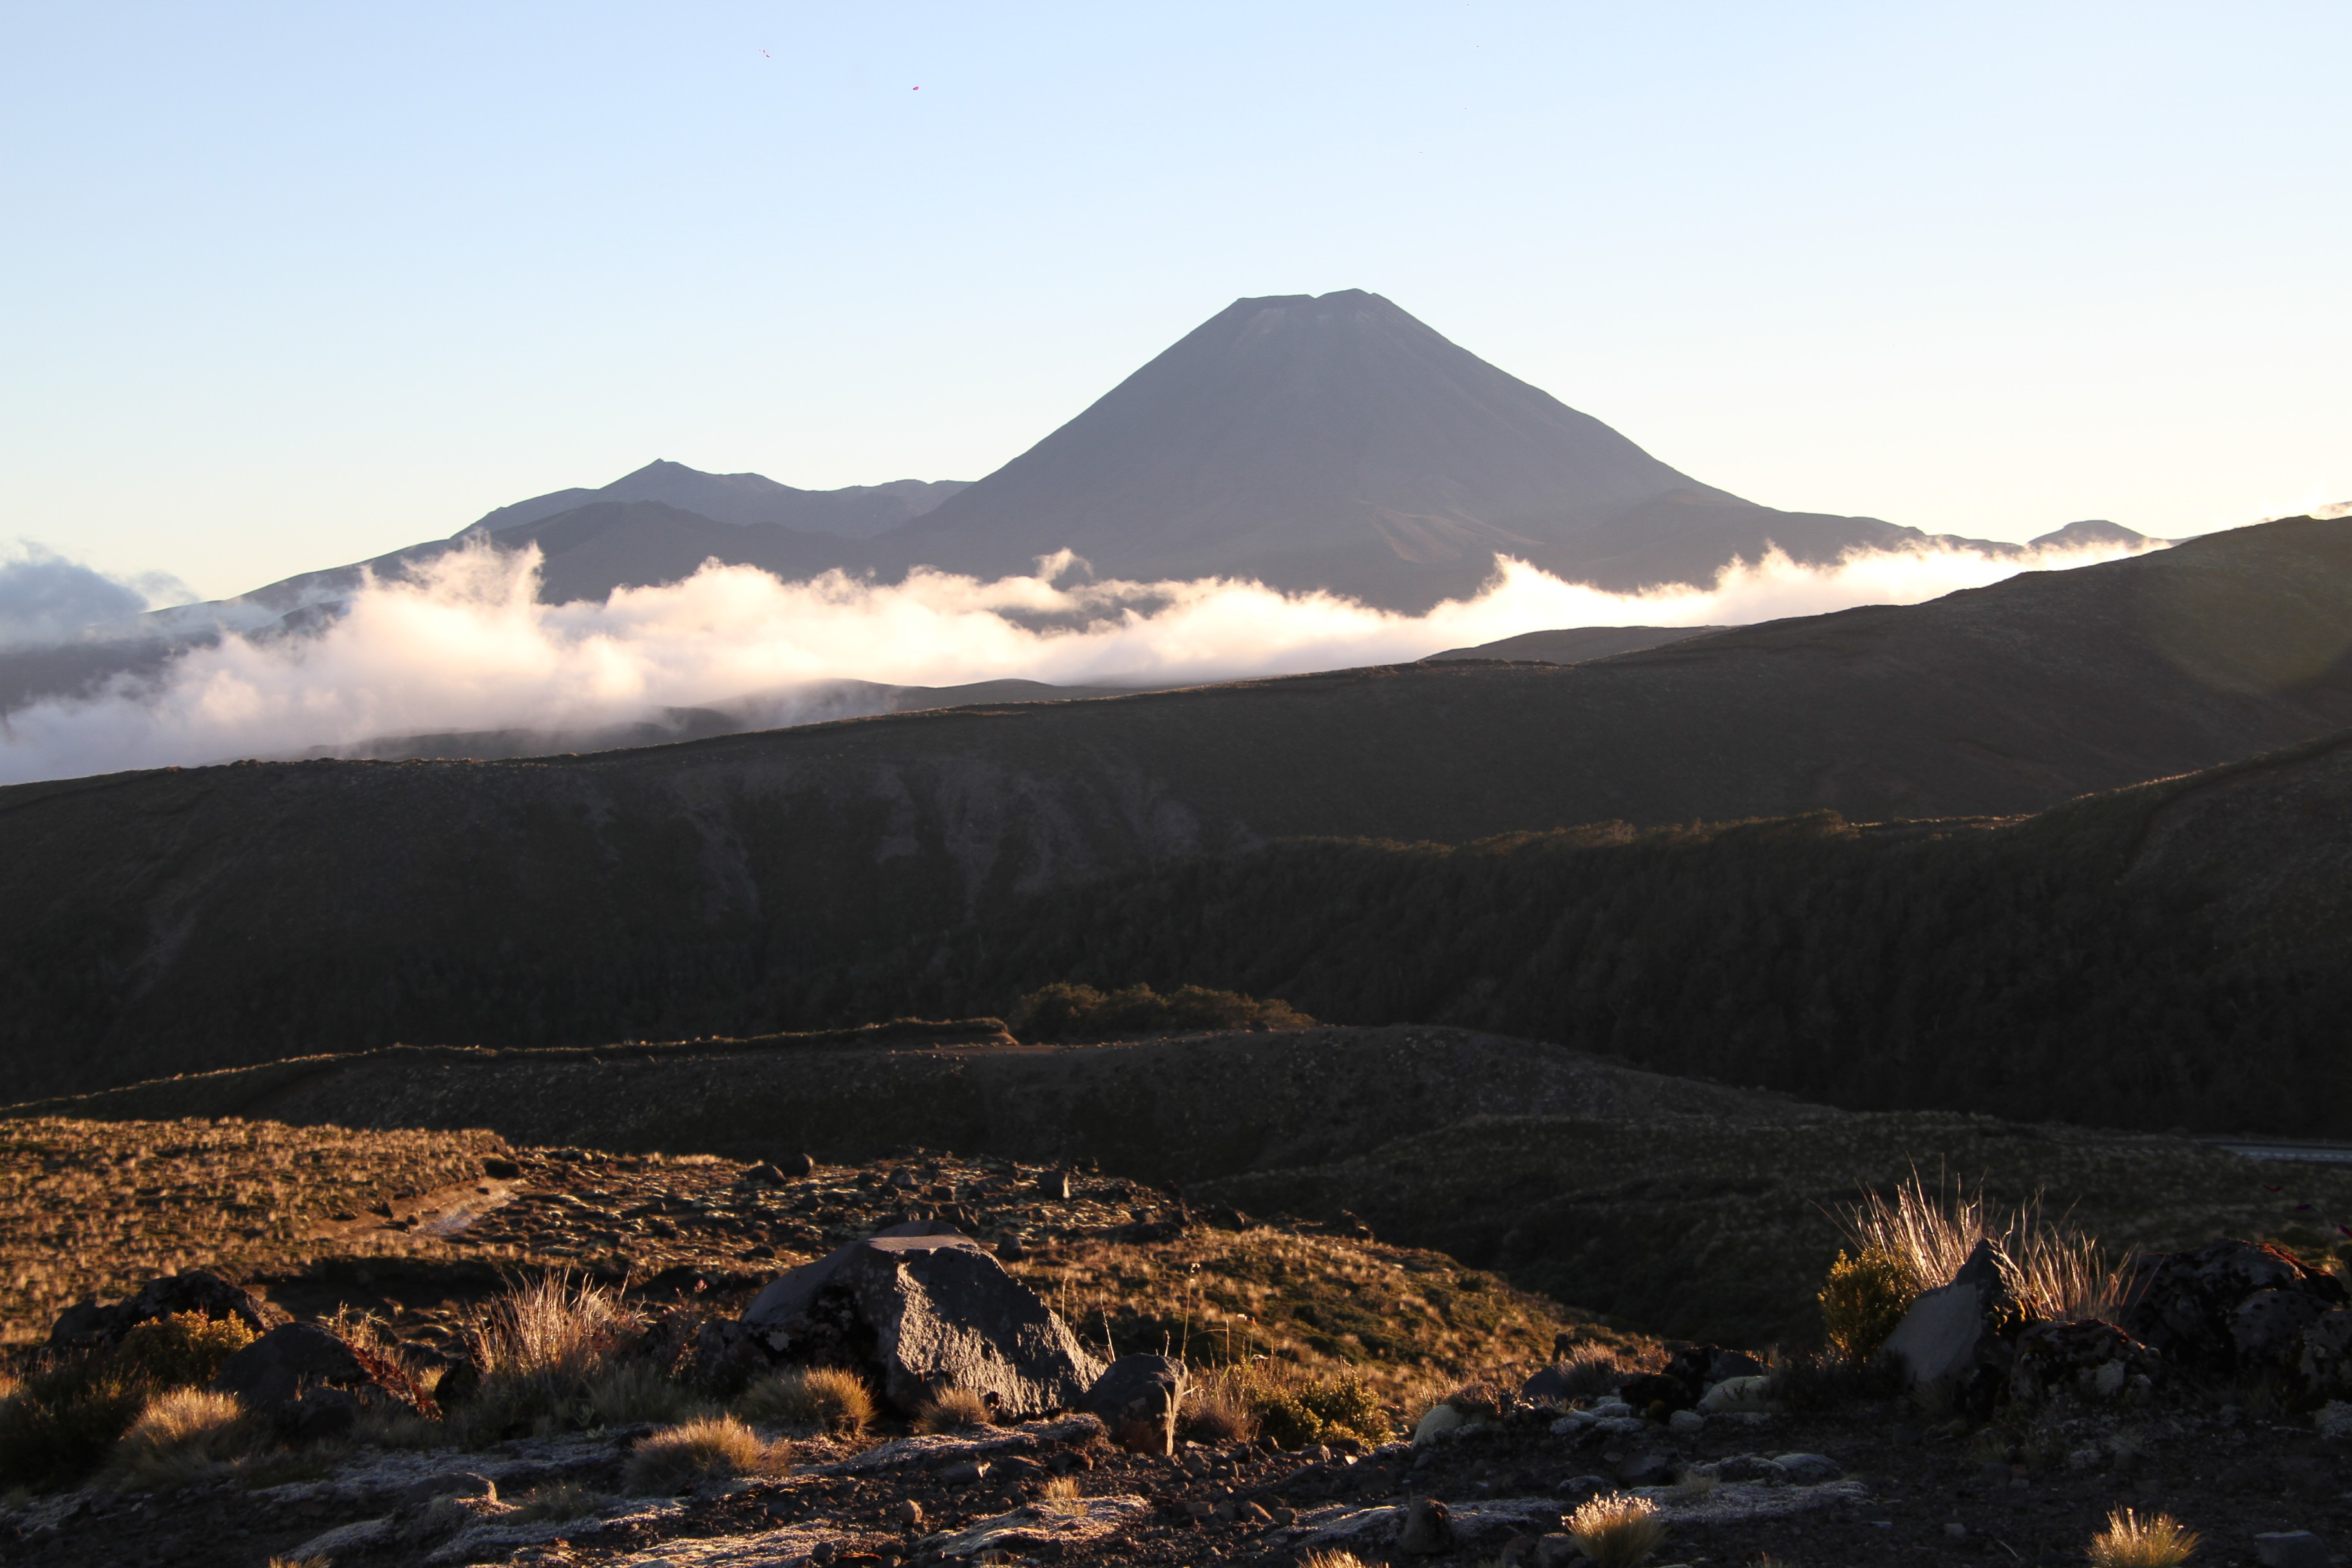 https://bubo.sk/uploads/galleries/5025/marekmeluch_novyzeland_mt.-doom---ngauruhoe.jpg